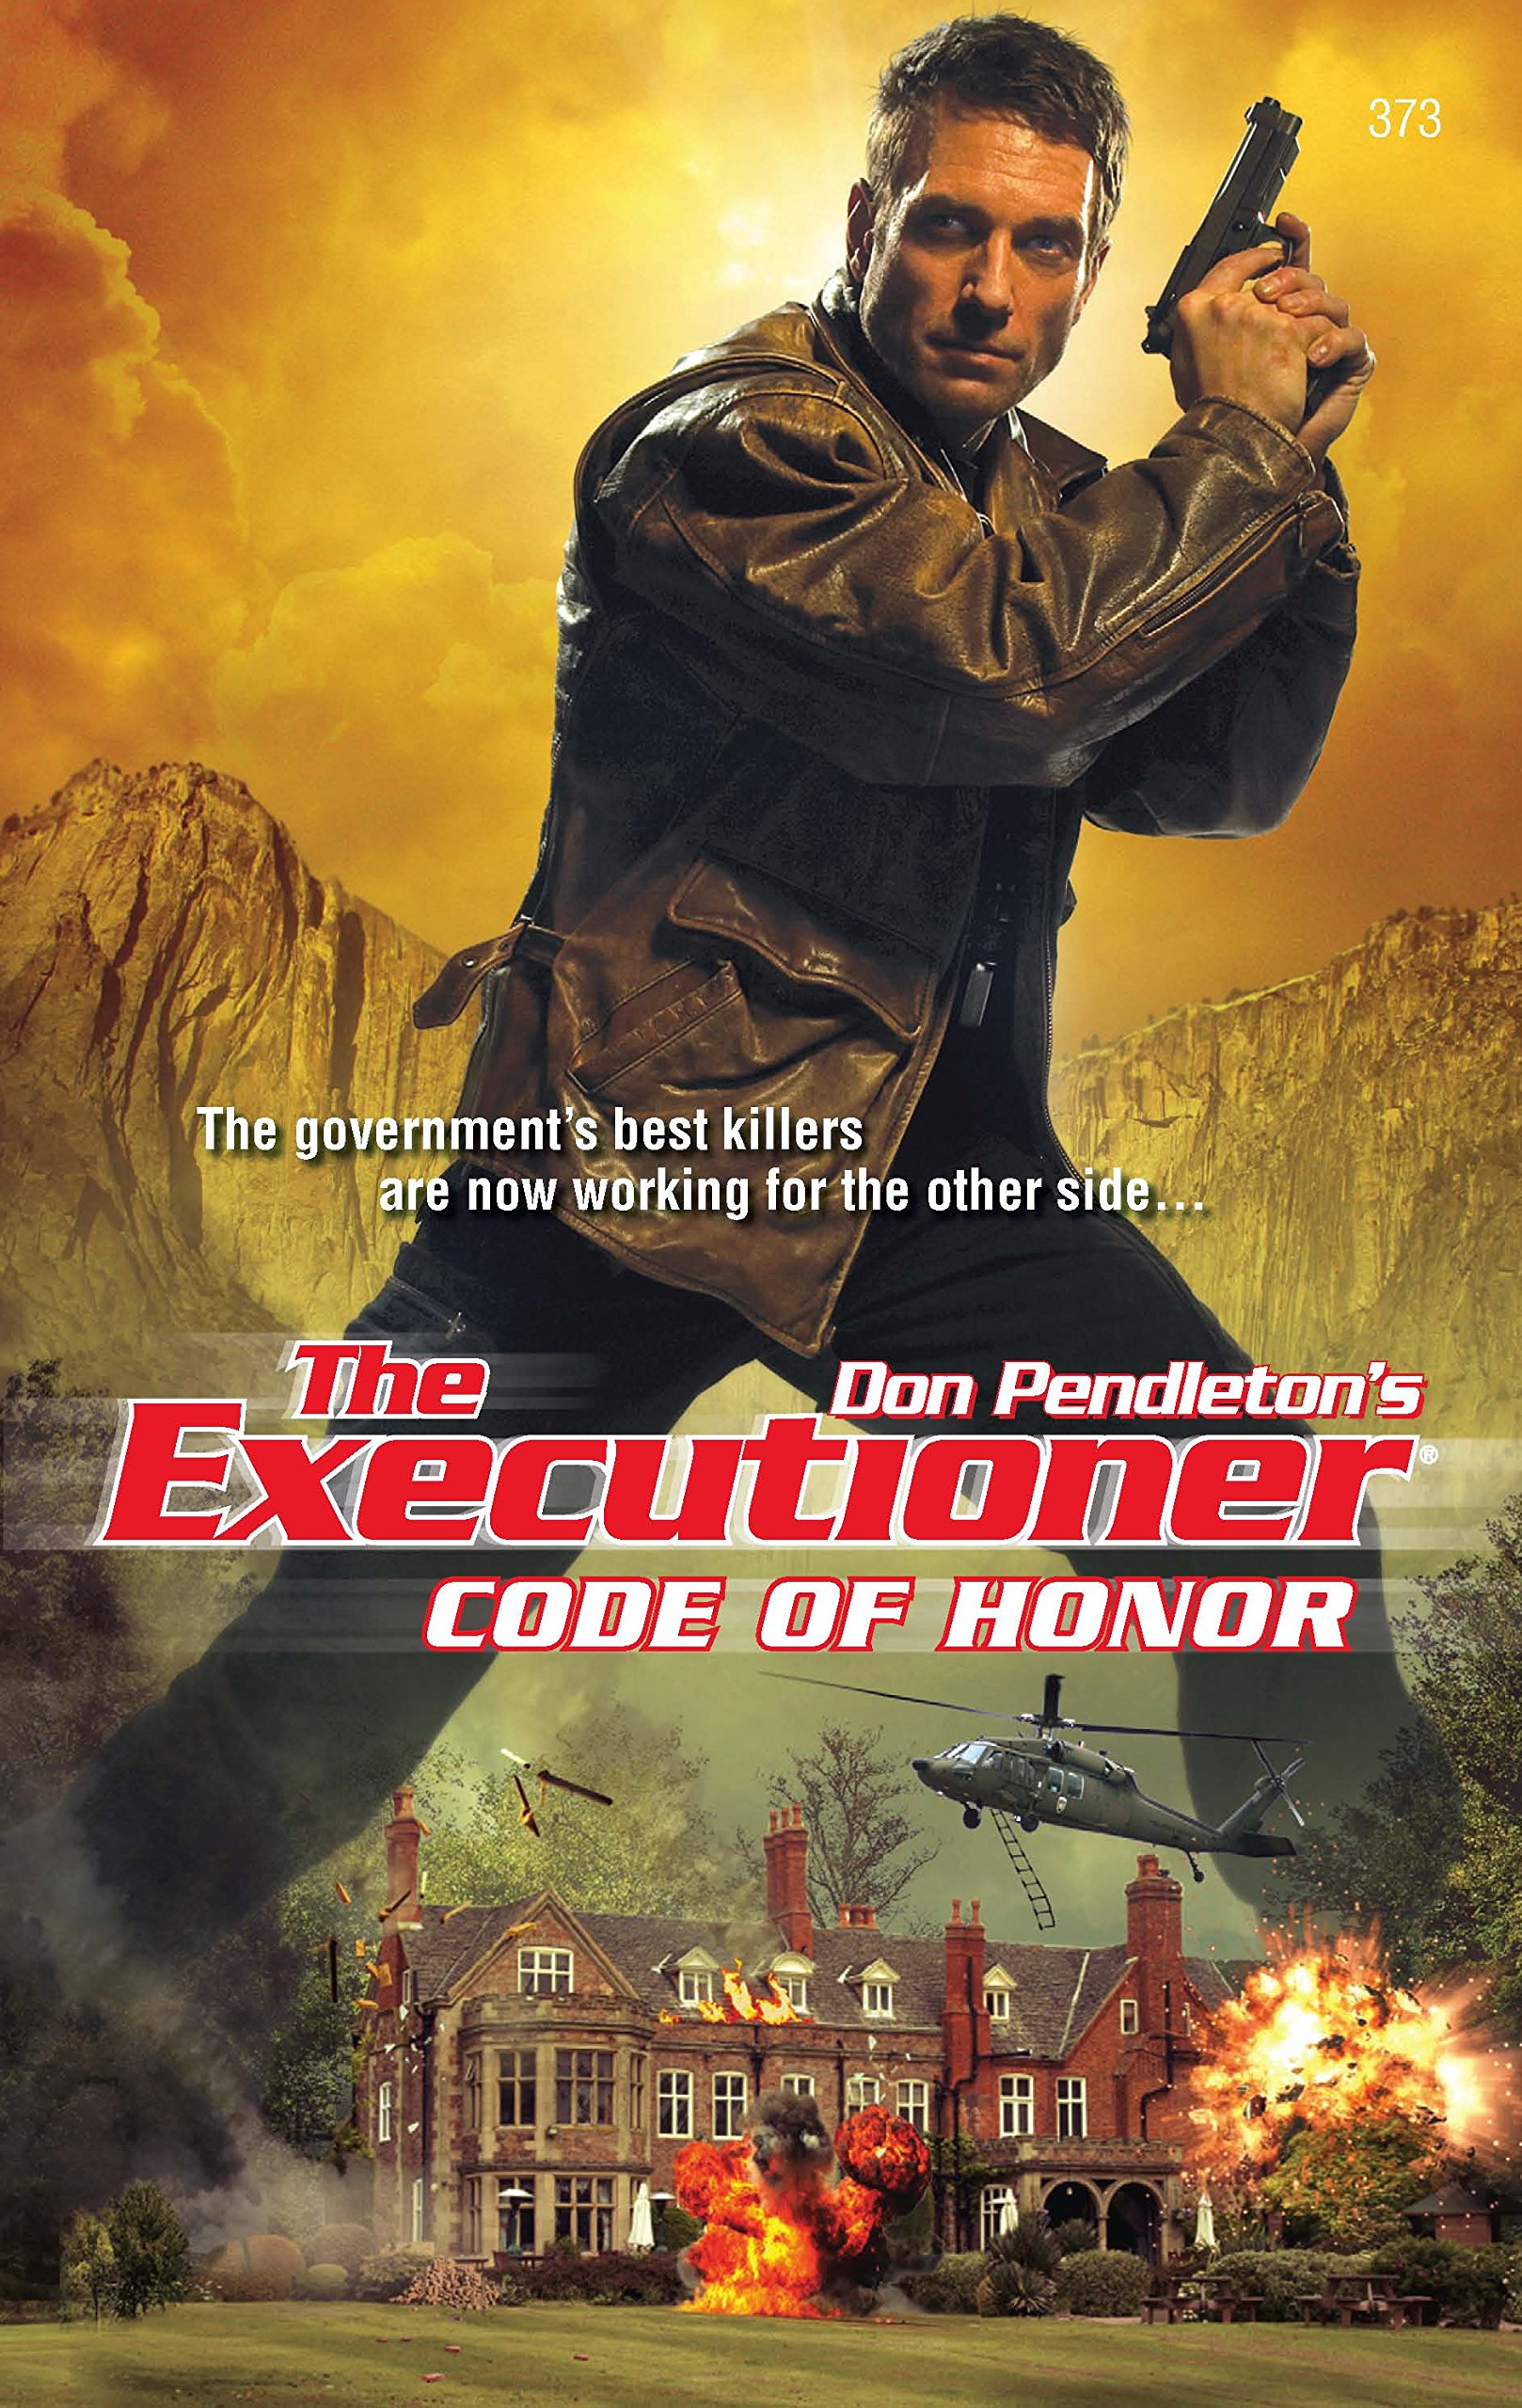 Amazon.com: Code of Honor (The Executioner) (9780373643738): Don Pendleton:  Books